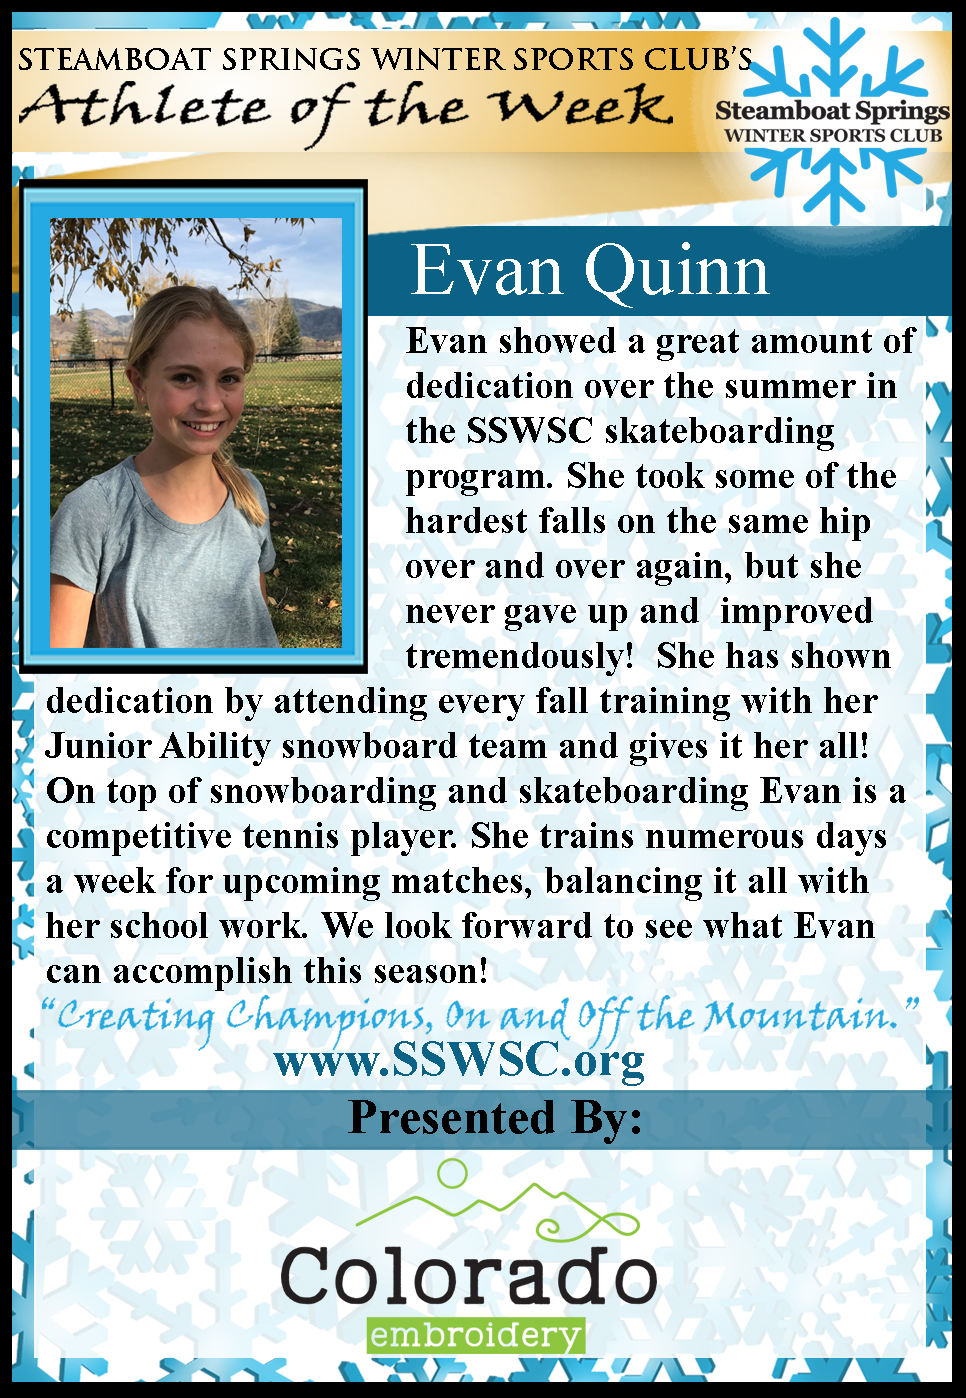 Athlete of the Week Evan Quinn